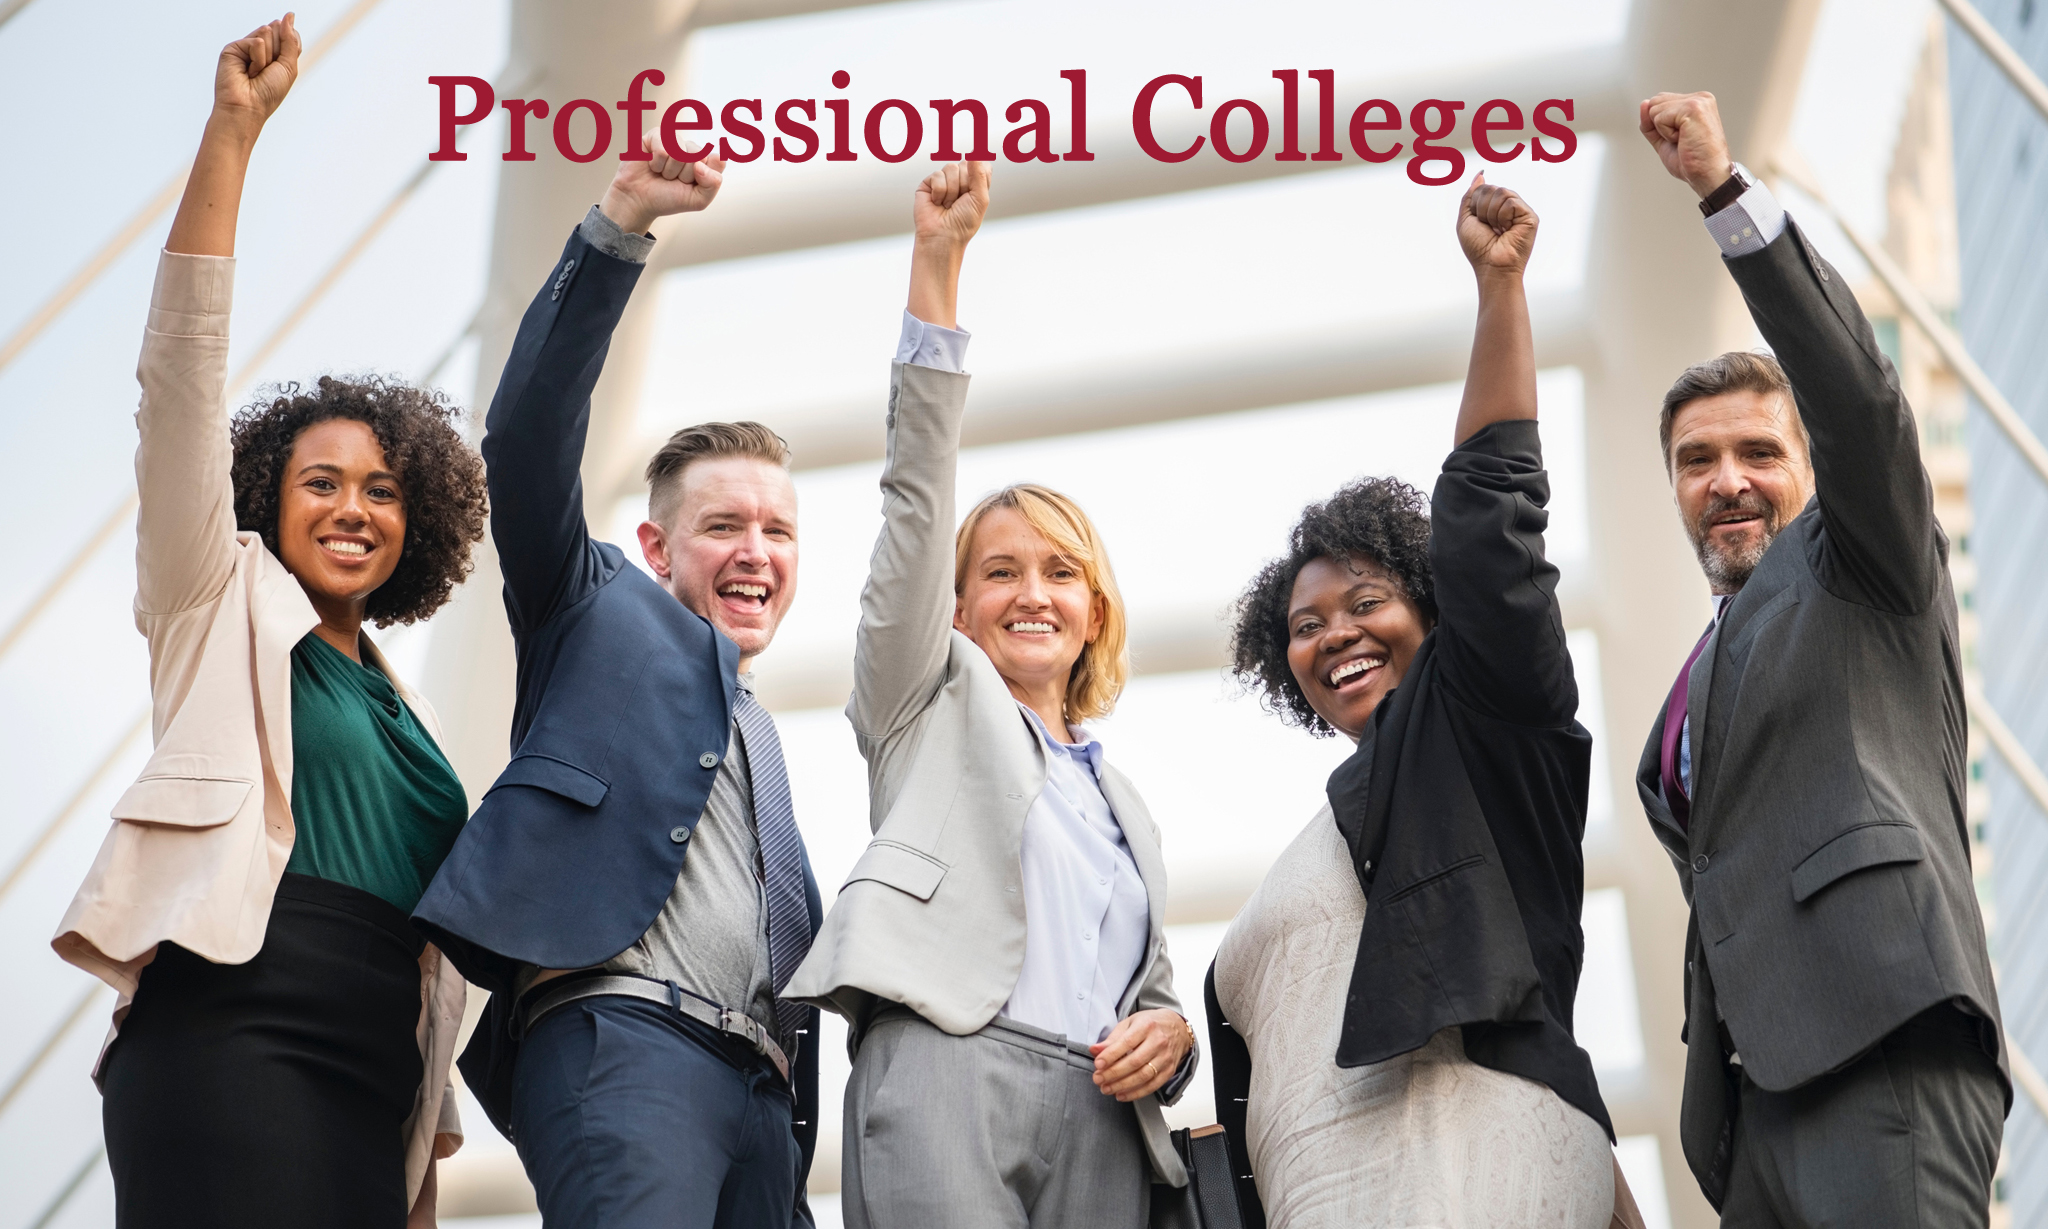 Professional Colleges